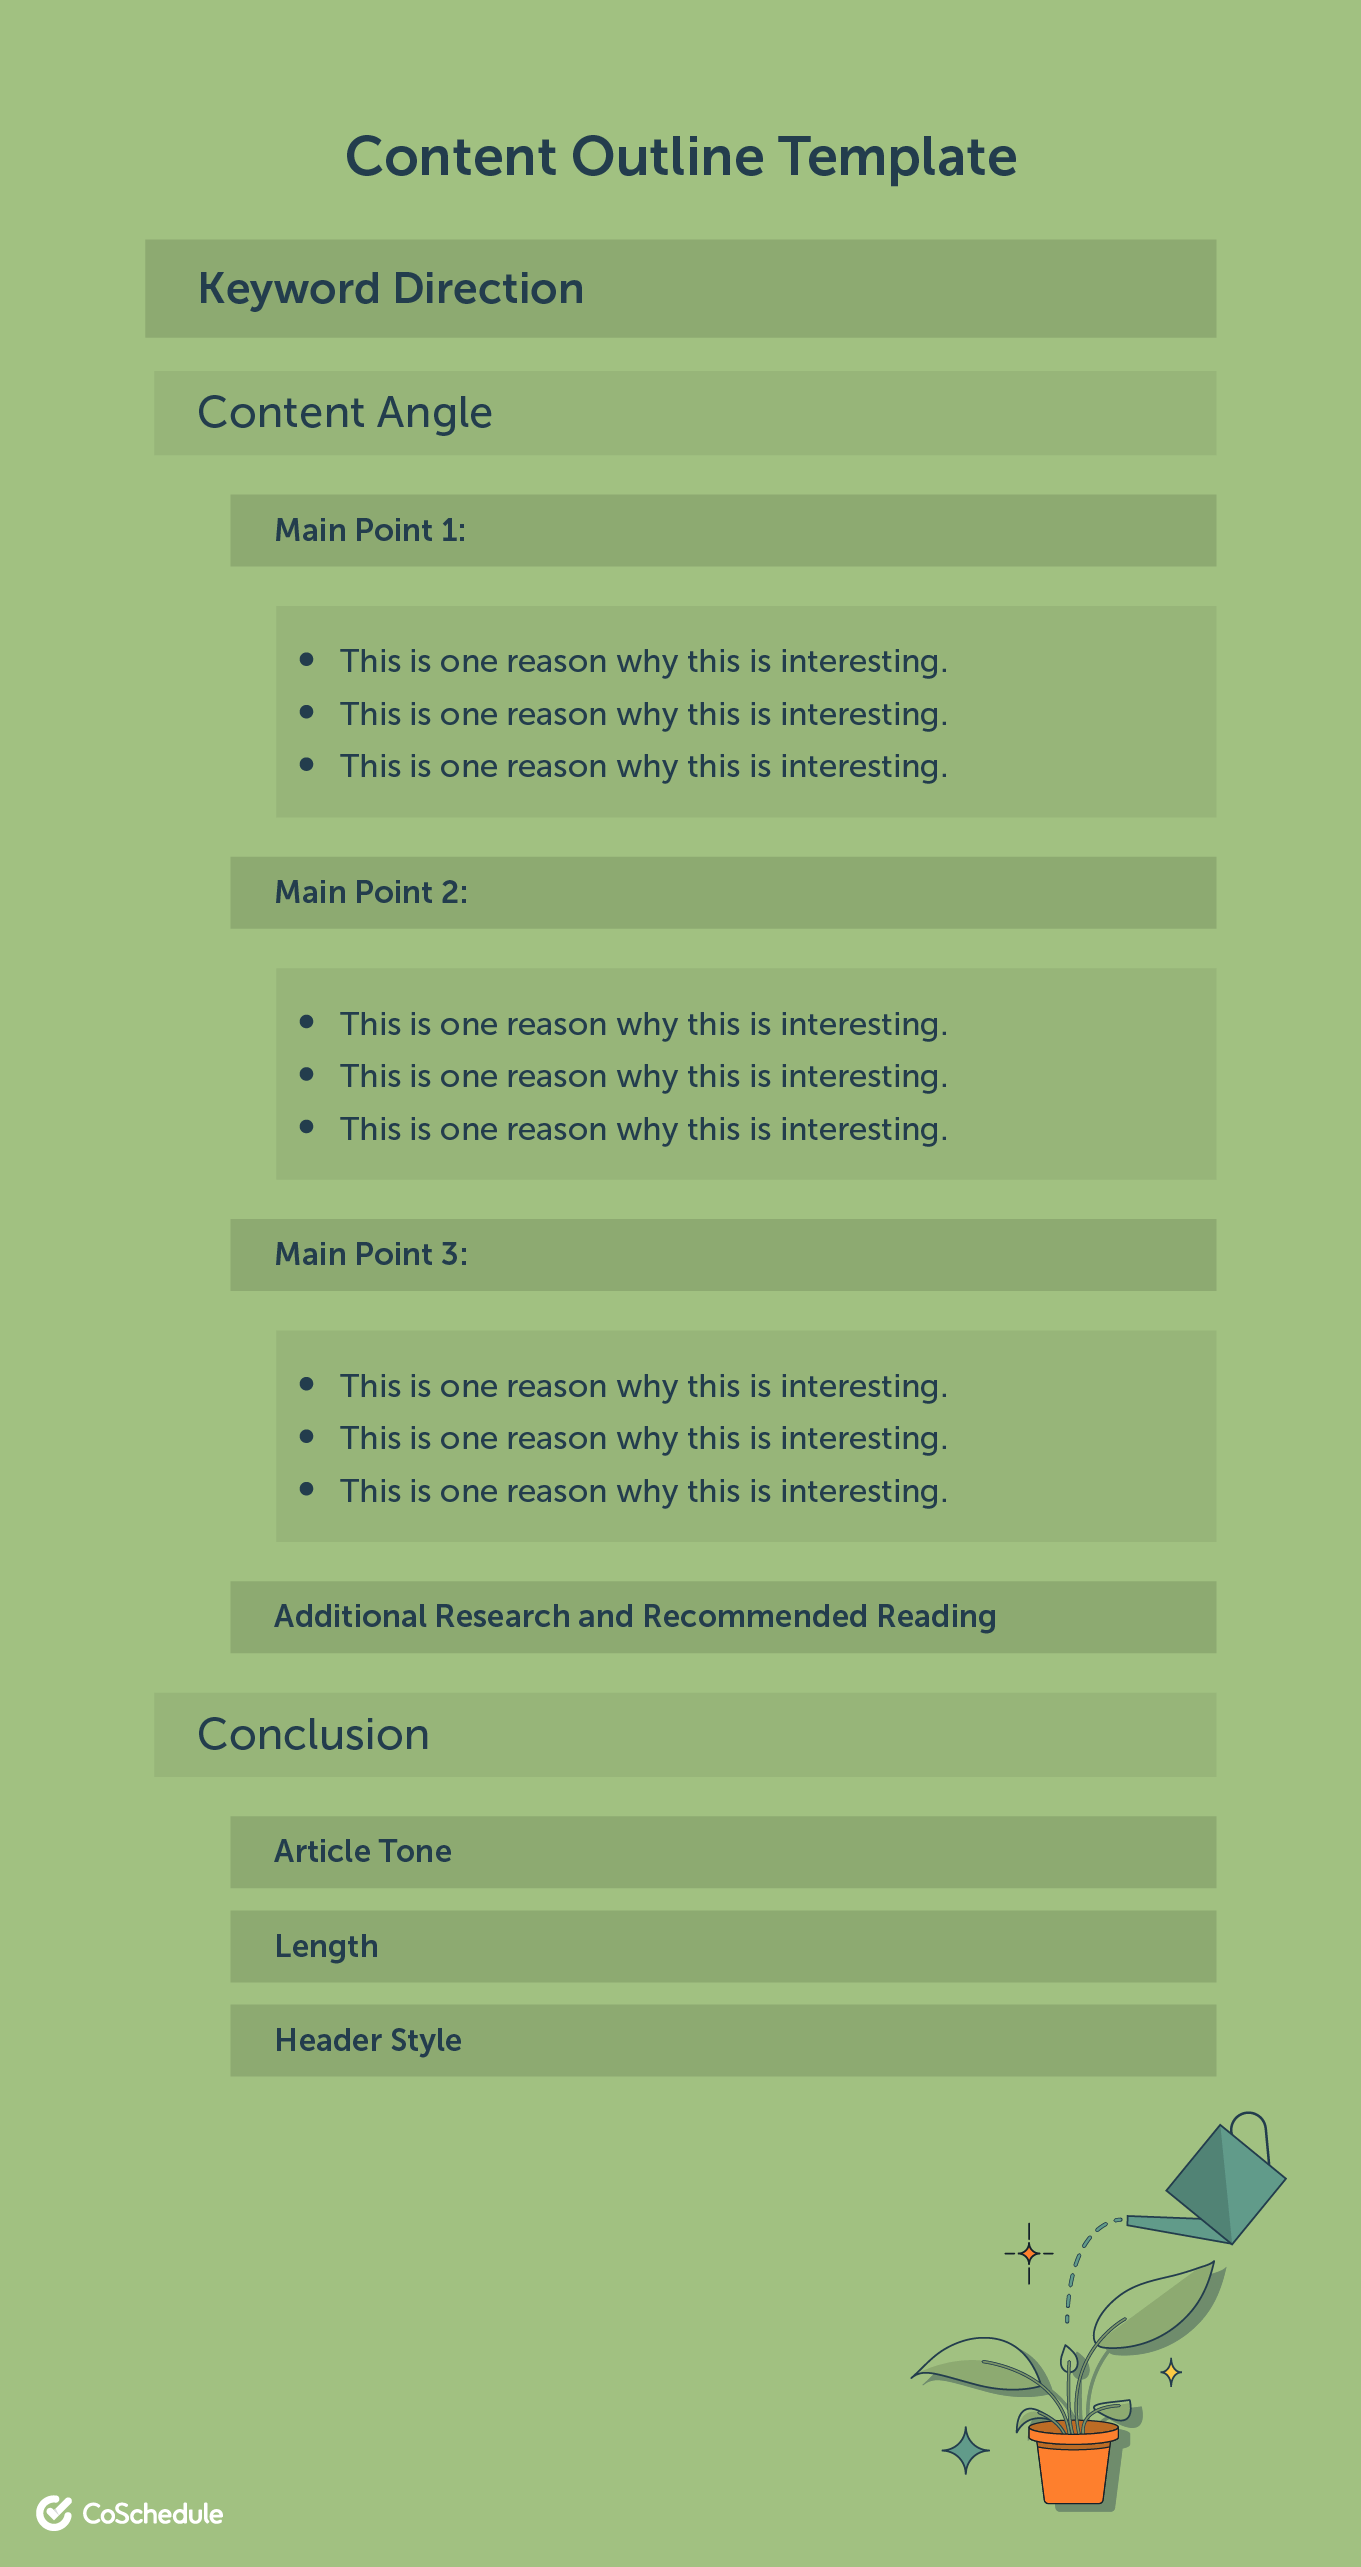 Content outline template